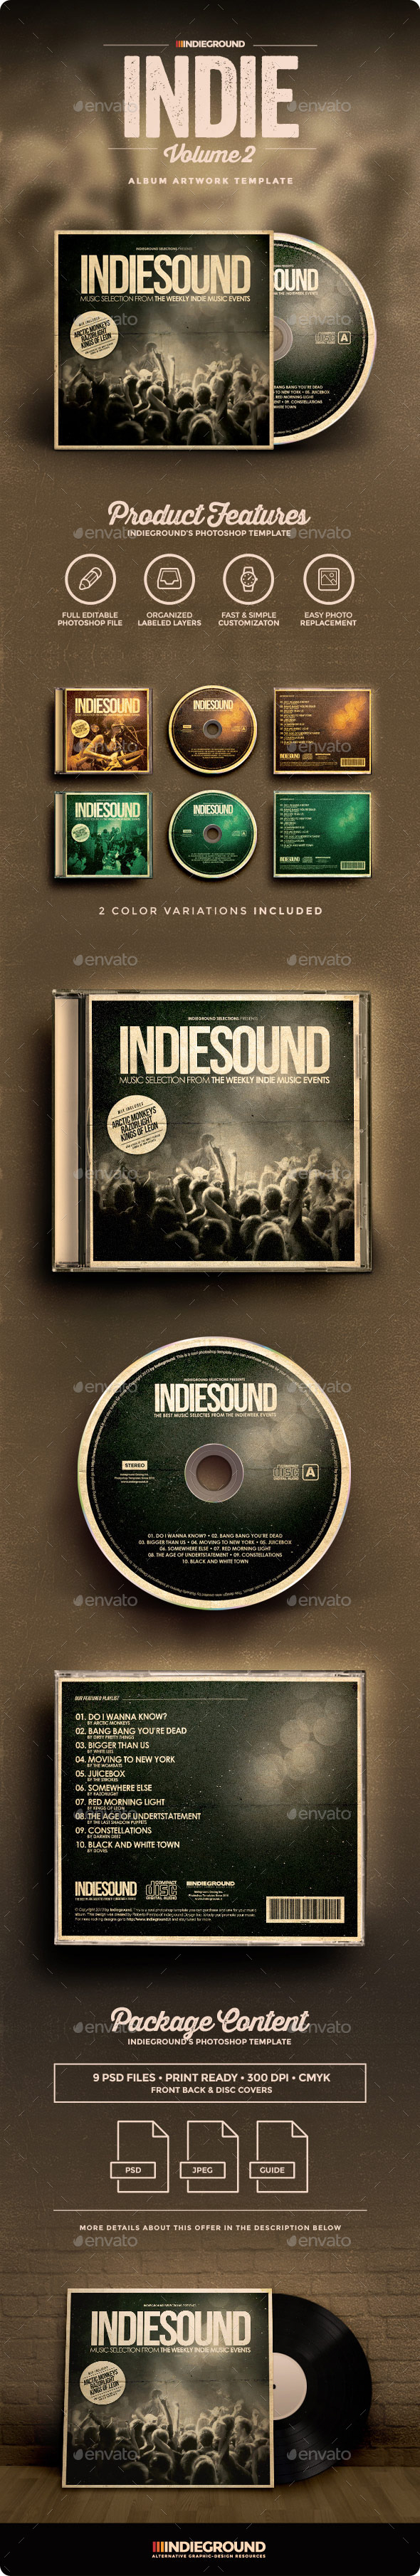 Indie CD Album Artwork Vol. 2 - CD & DVD Artwork Print Templates